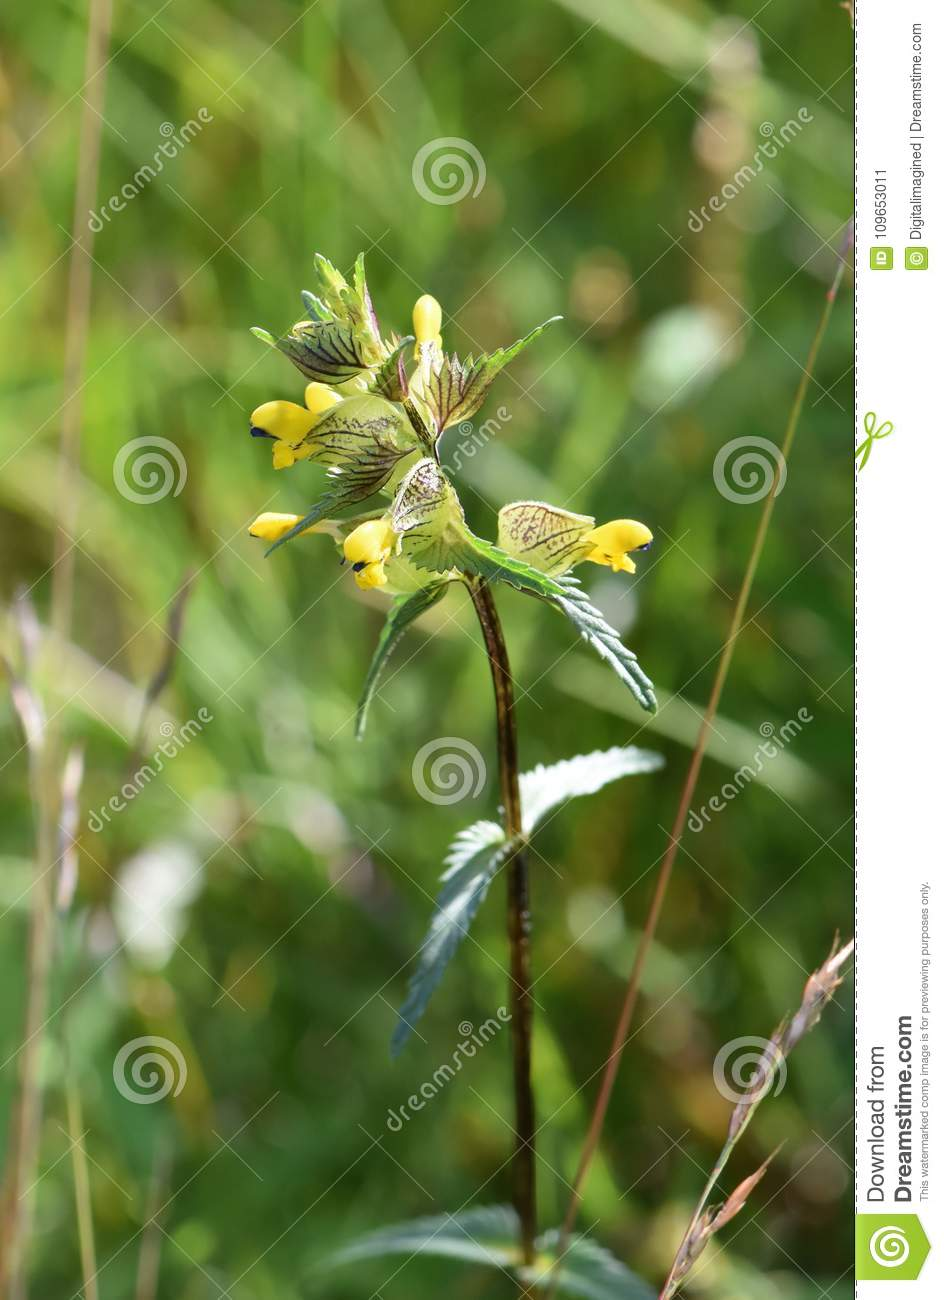 Rhinanthus minor little yellow rattle flower stock image image of download rhinanthus minor little yellow rattle flower stock image image of little background mightylinksfo